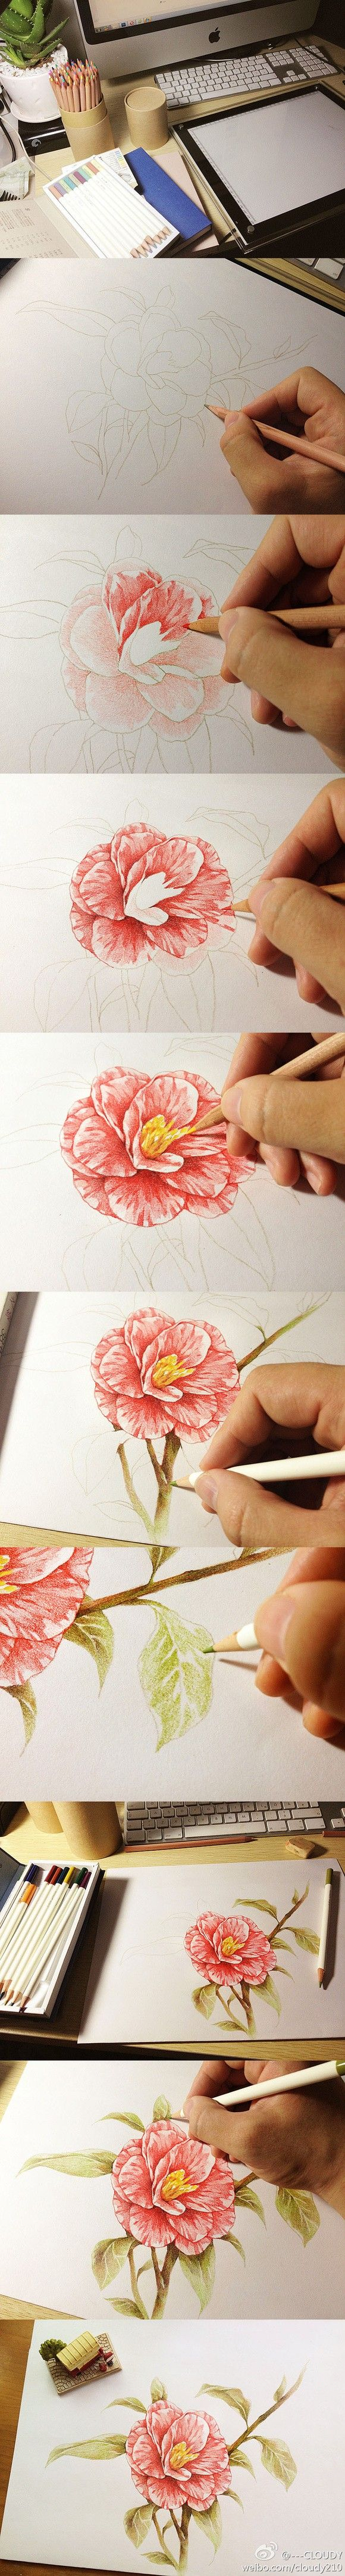 flower with colored pencil                                                                                                                                                                                 More